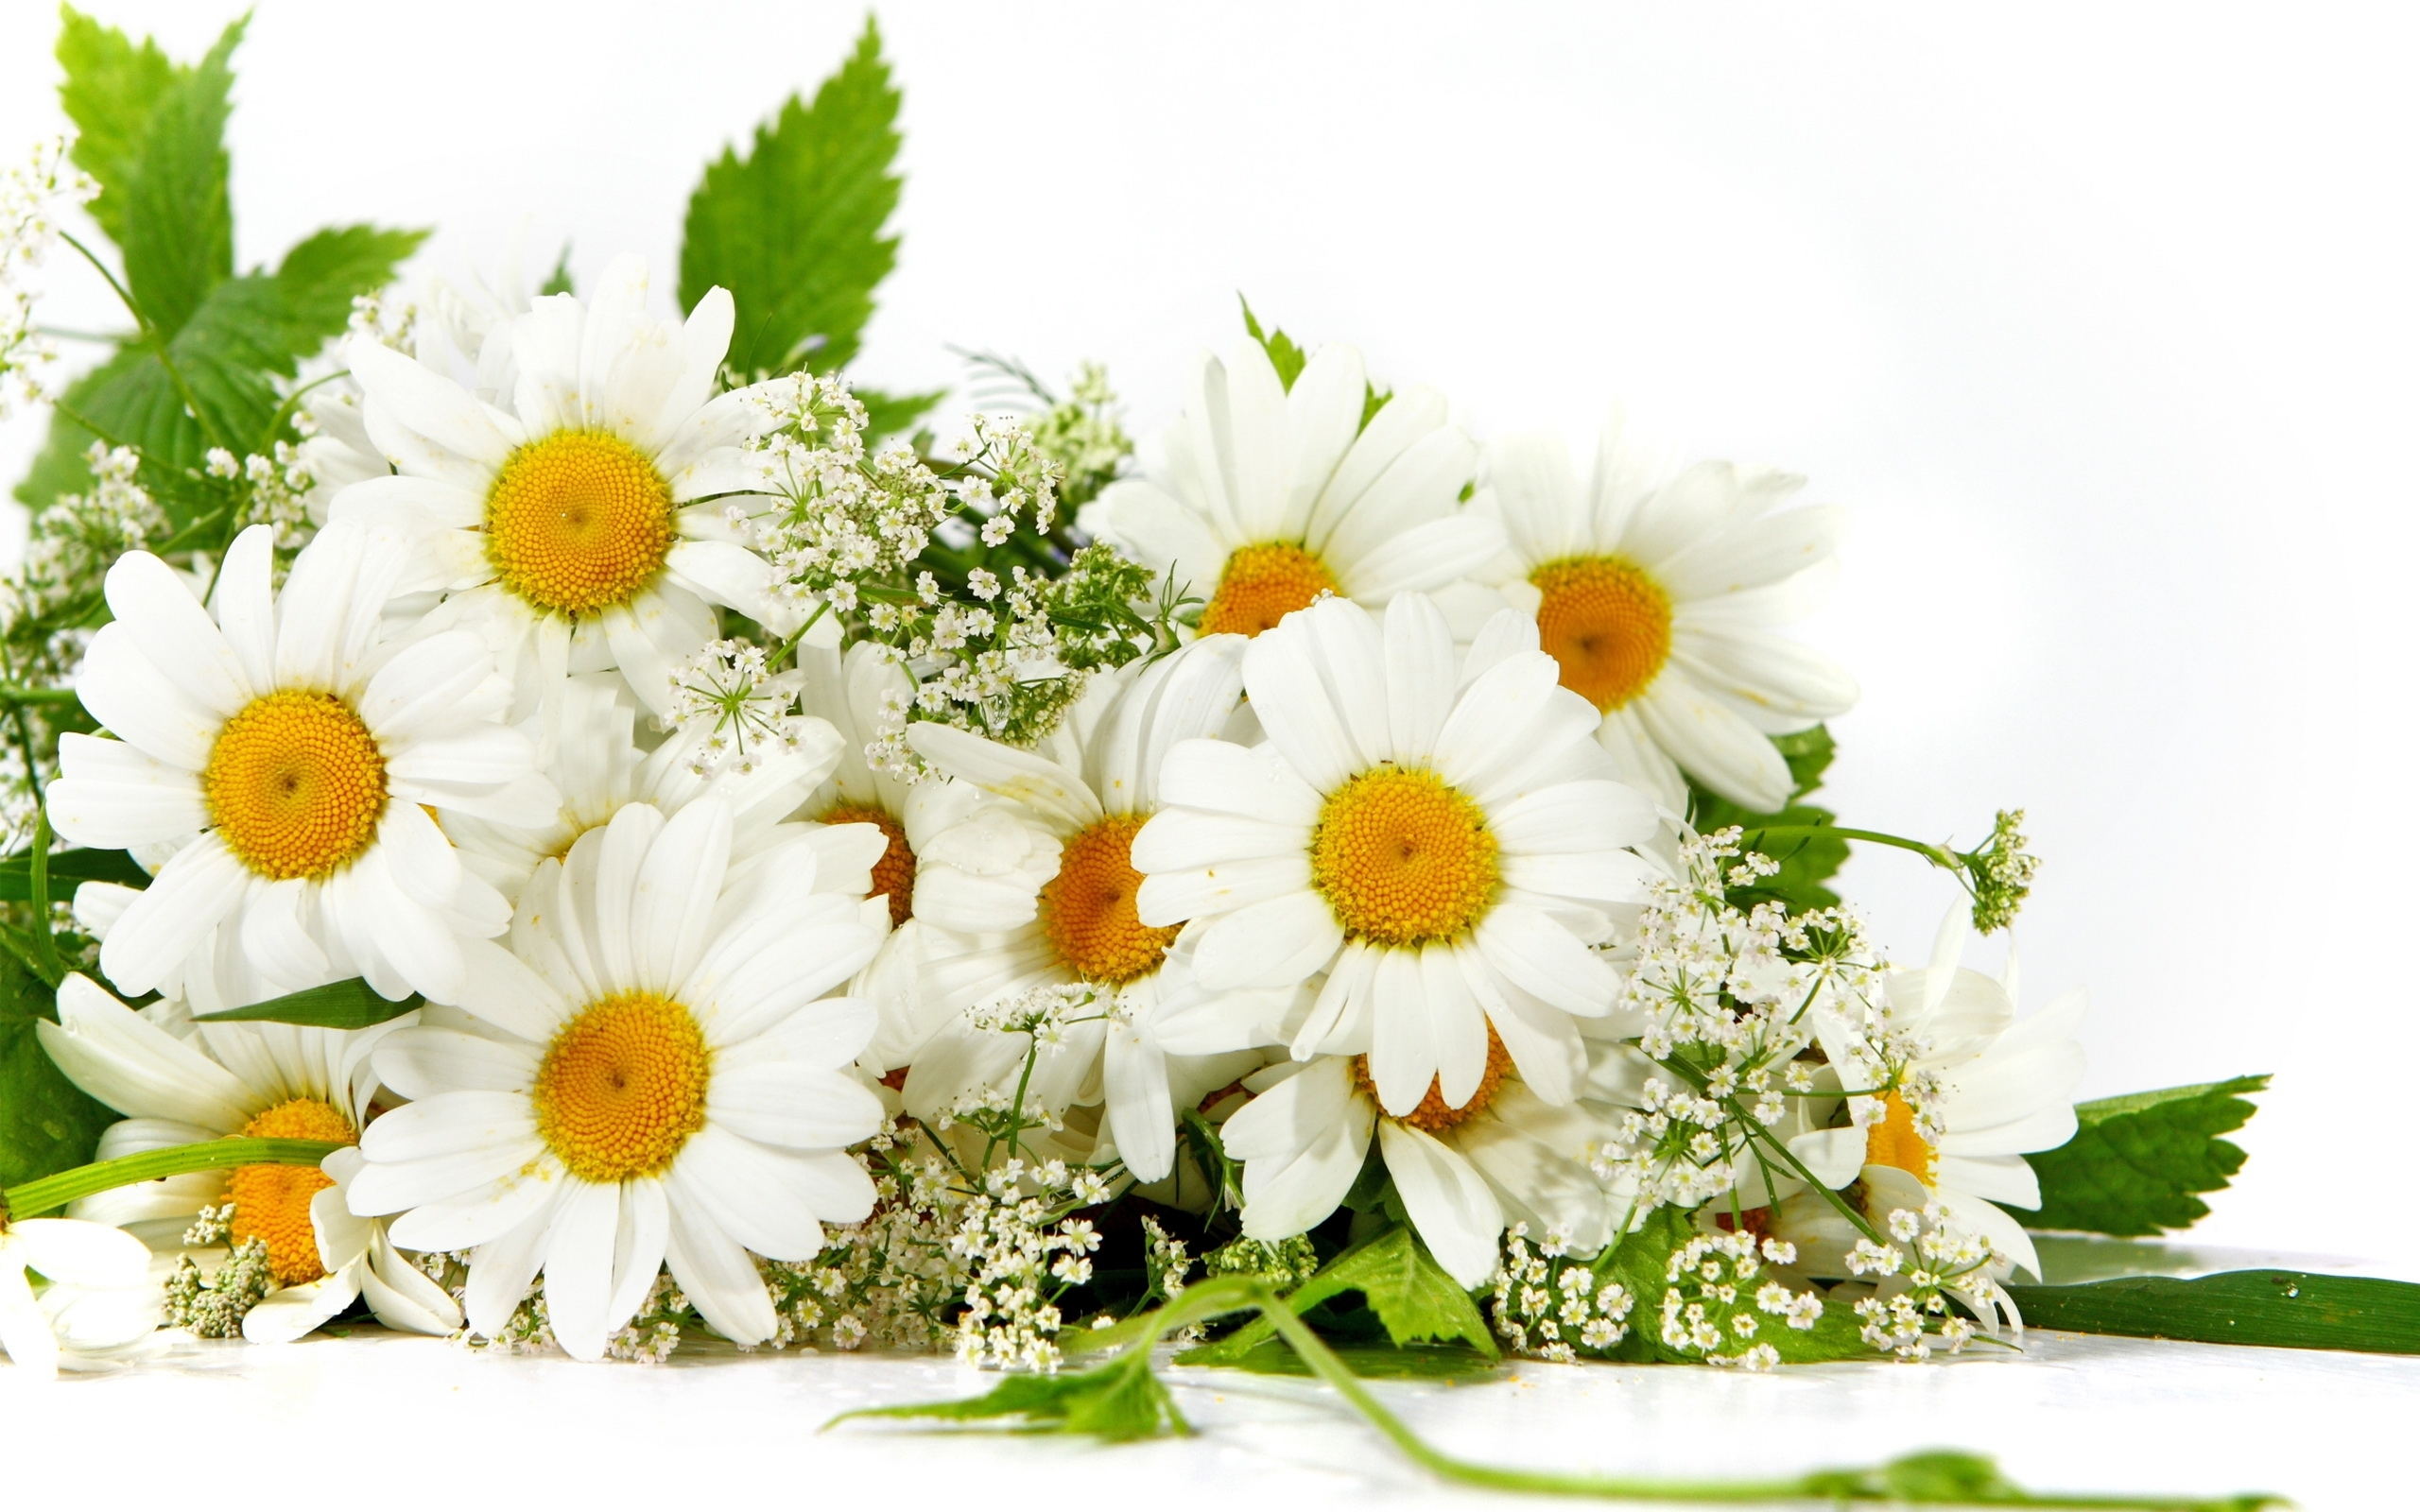 46884 download wallpaper Plants, Flowers, Camomile screensavers and pictures for free